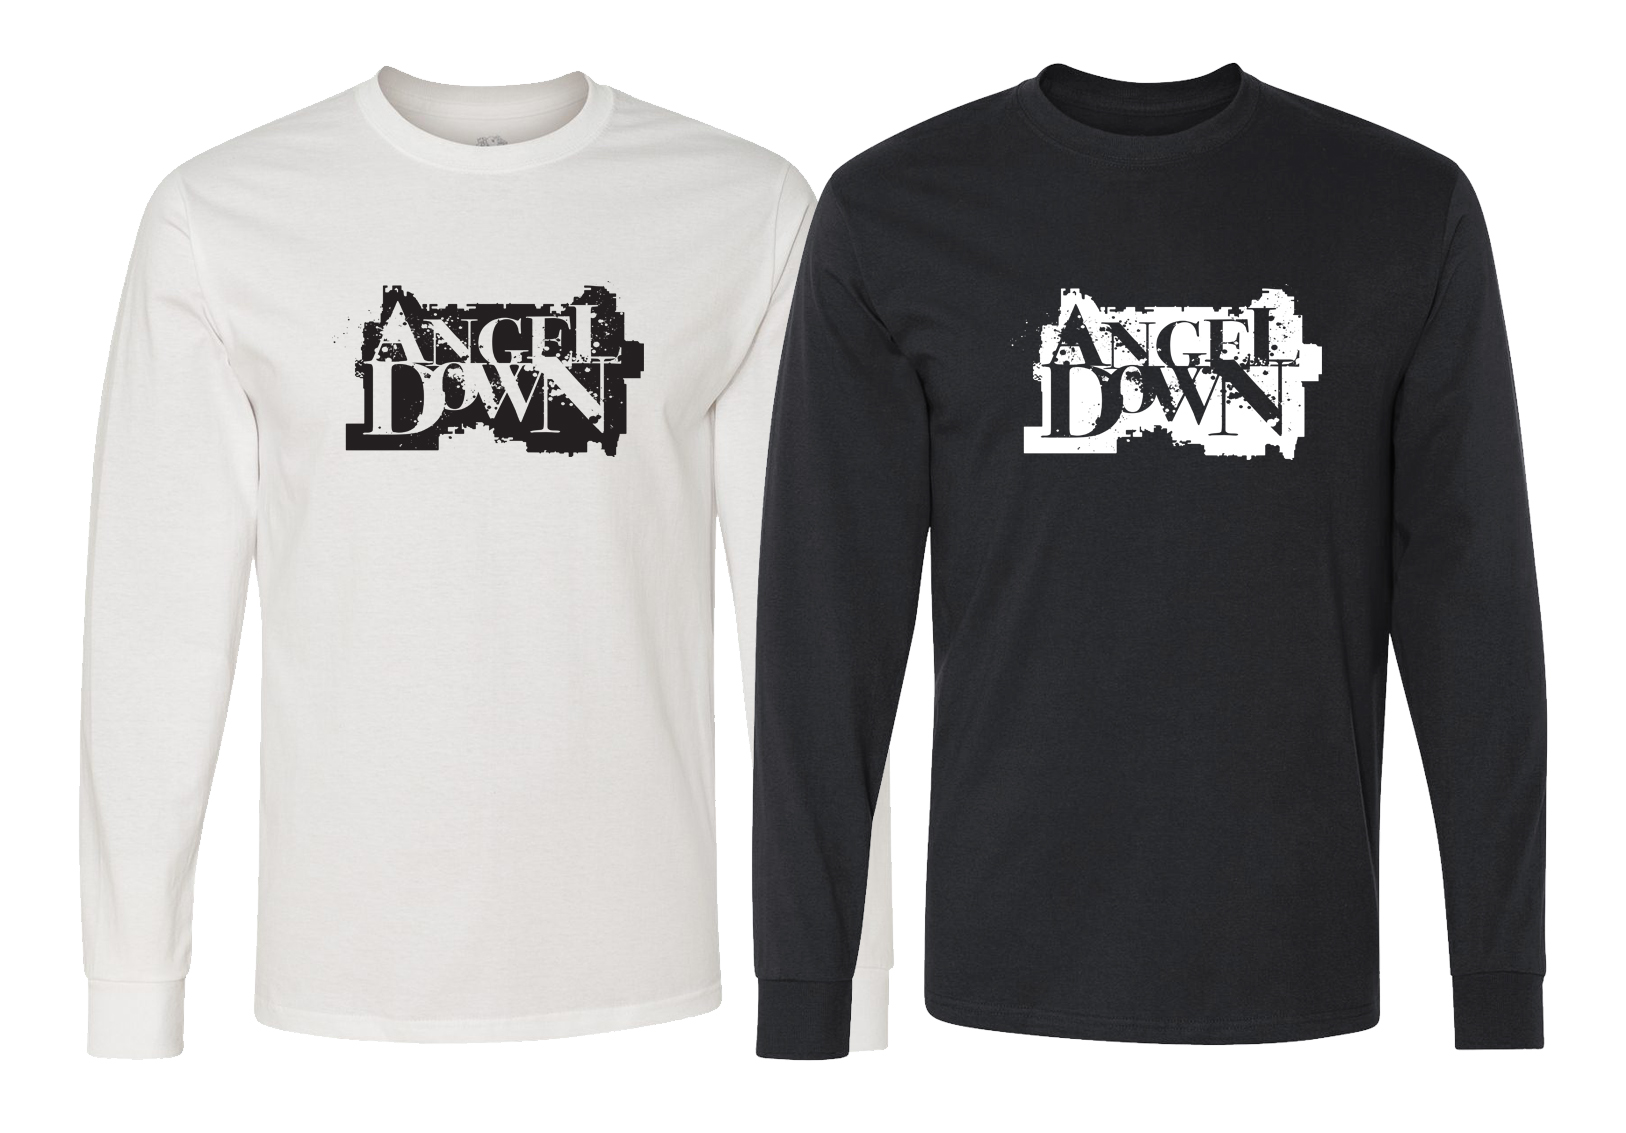 angeldownshirtlongsleeve